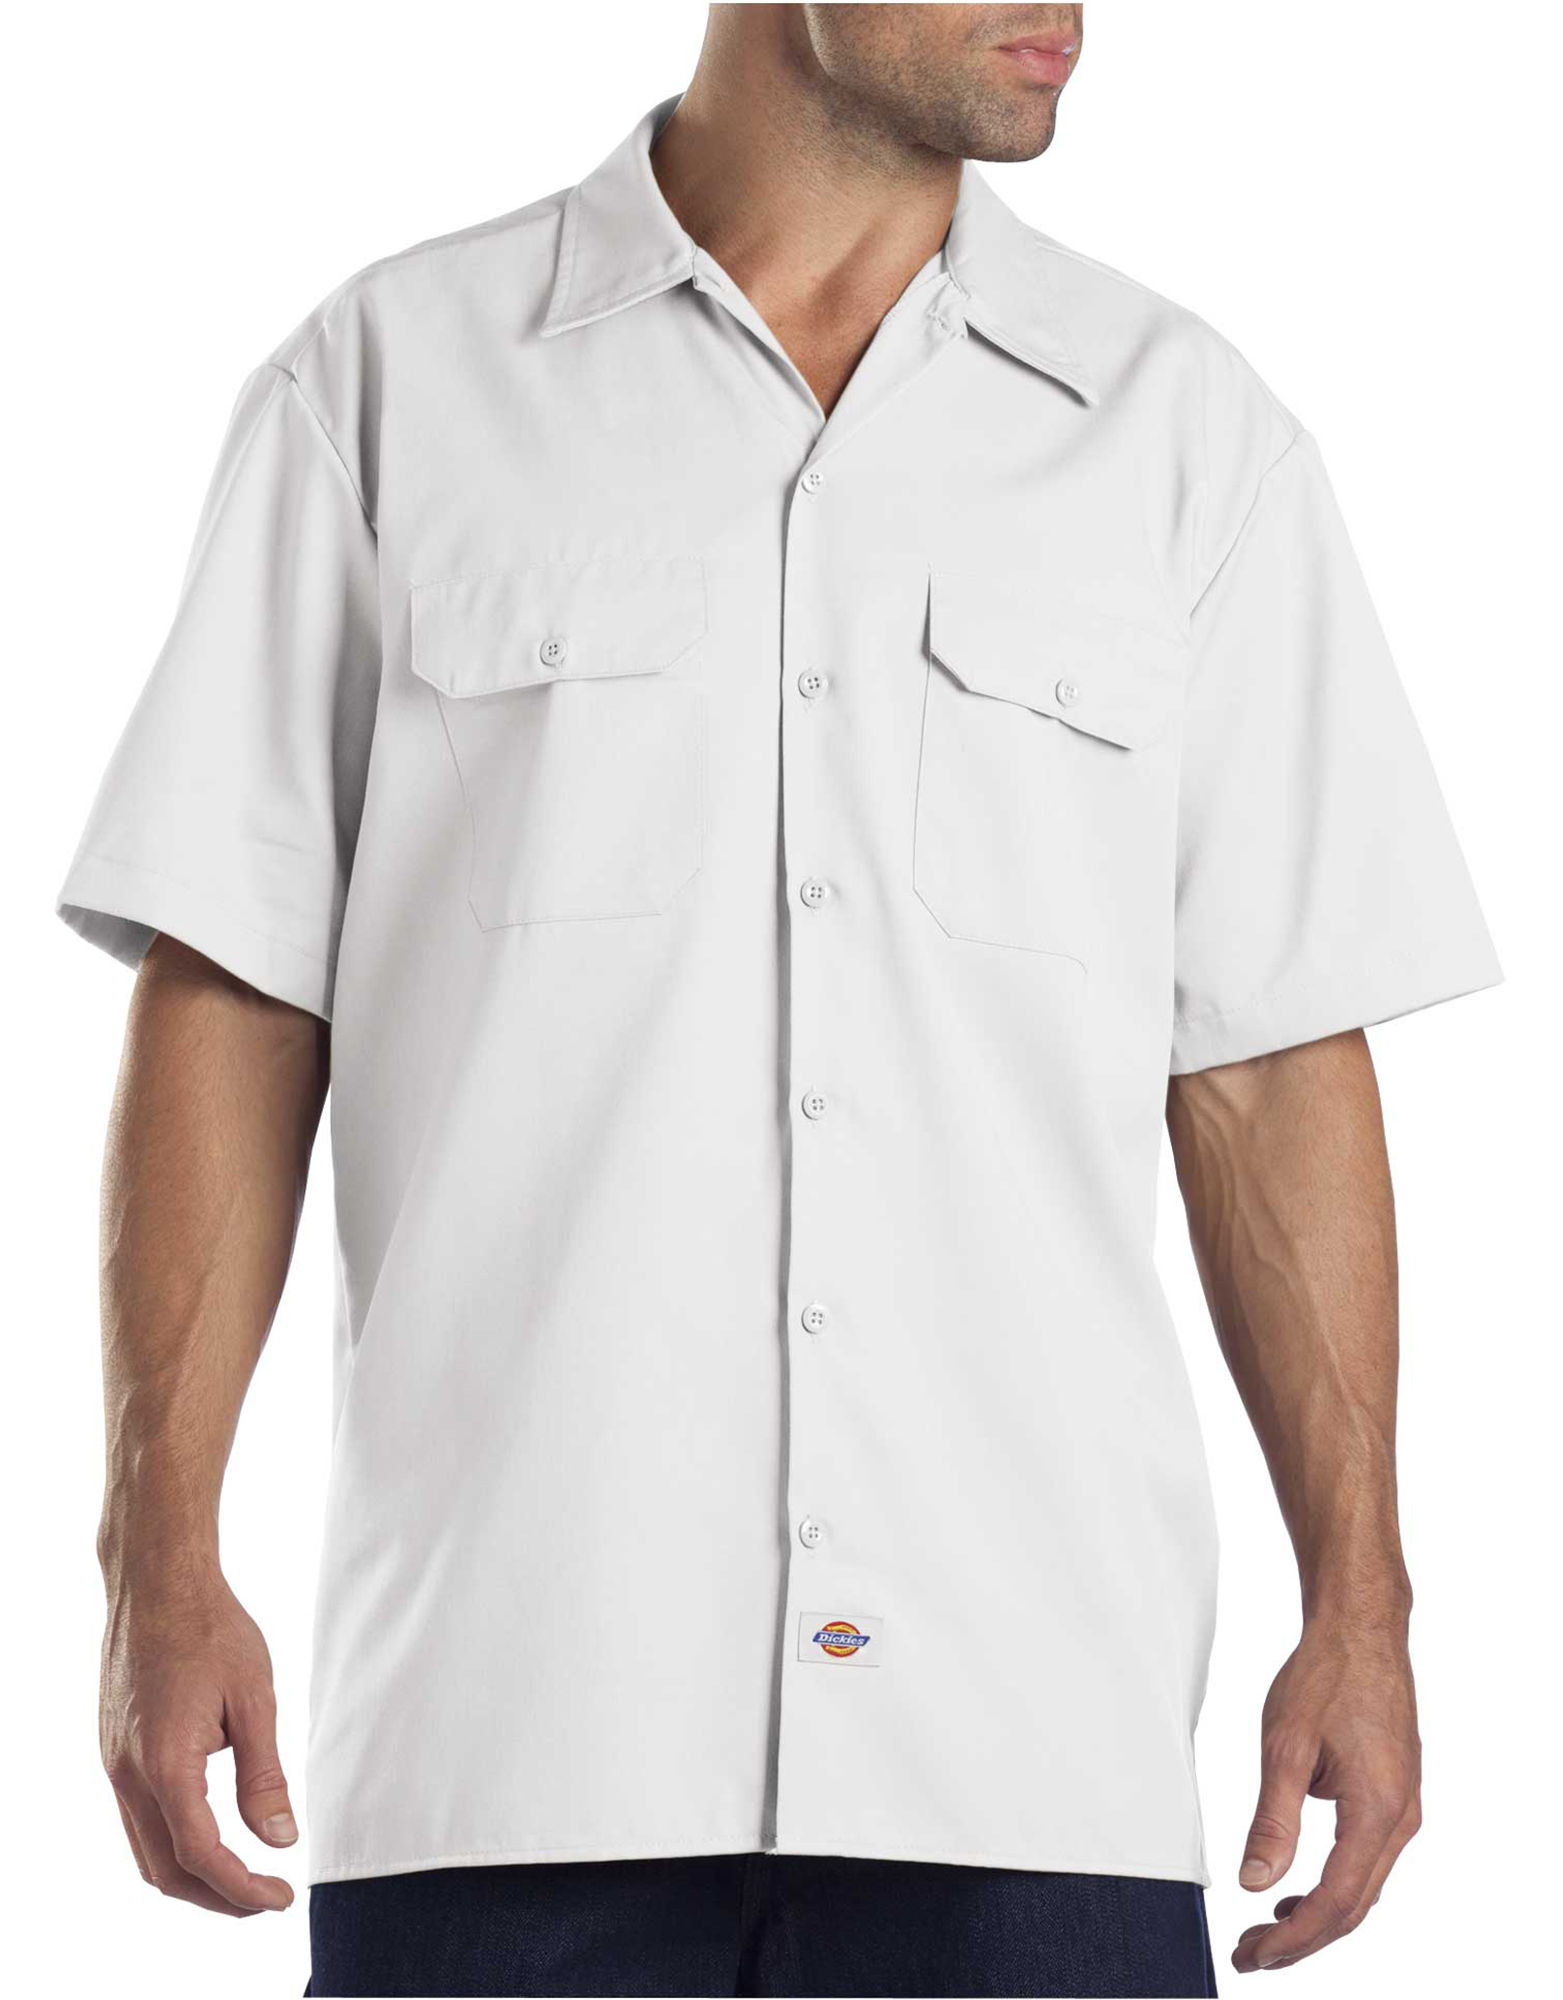 Ss Work Shirt-Dickies Industrial